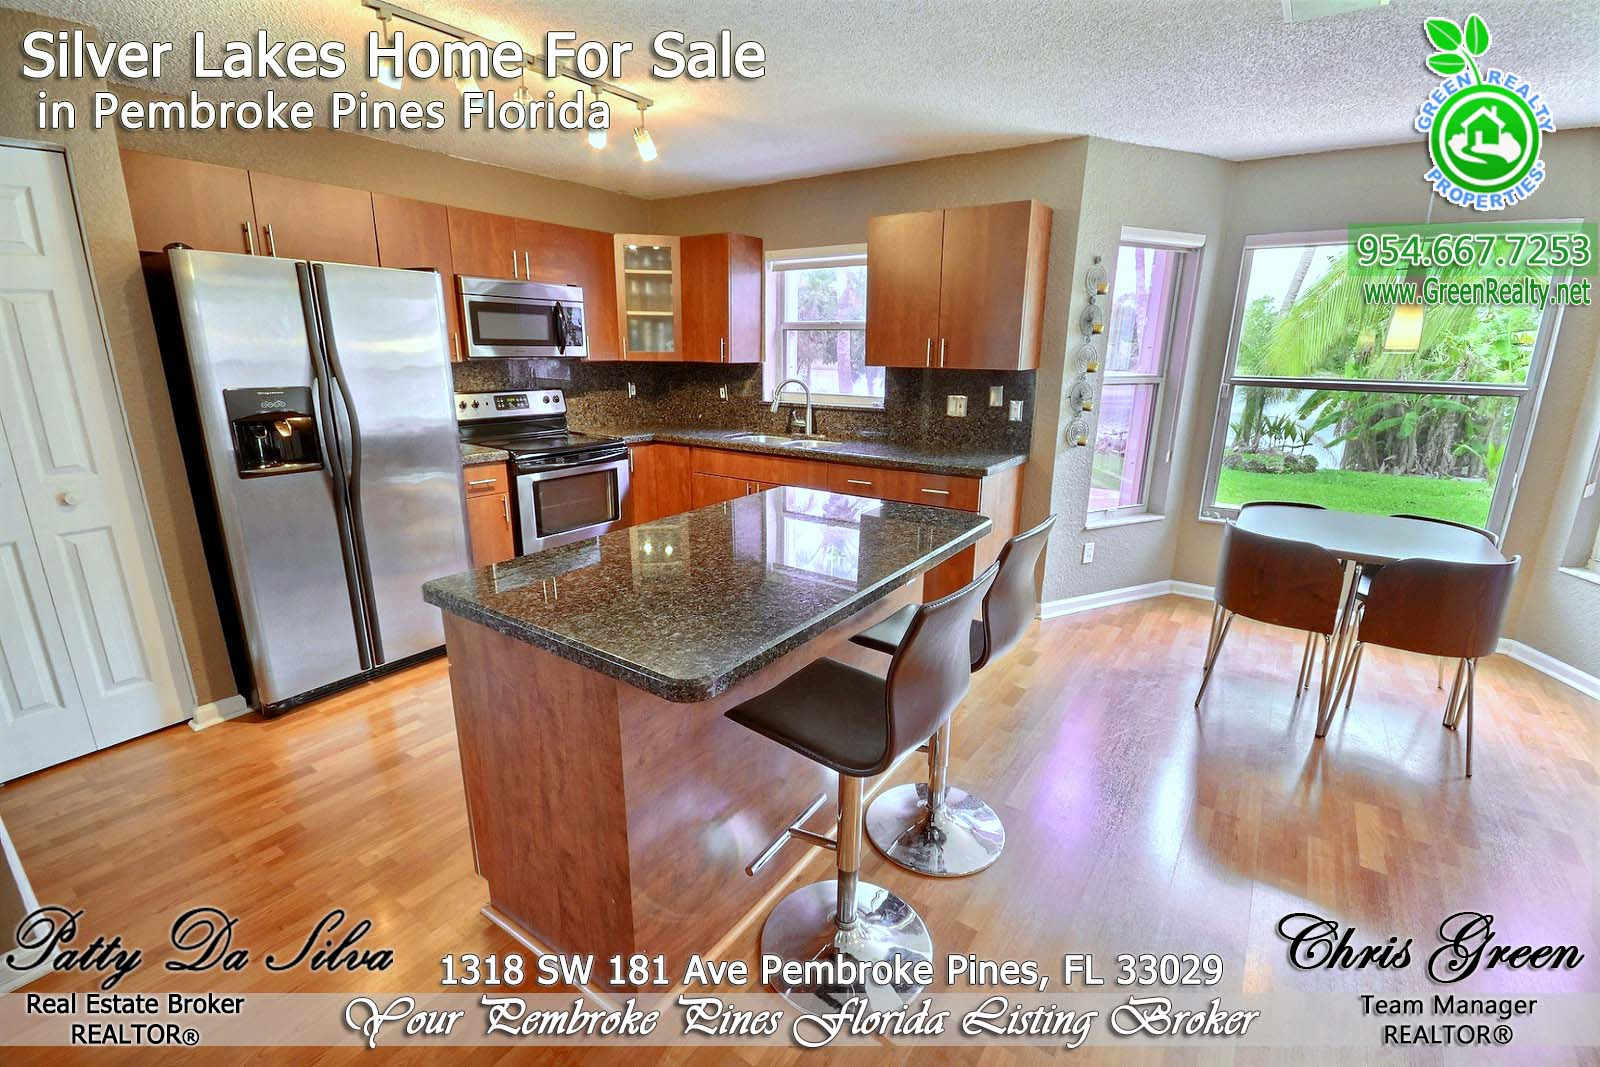 9 Silver Lakes Homes For Sale (2)